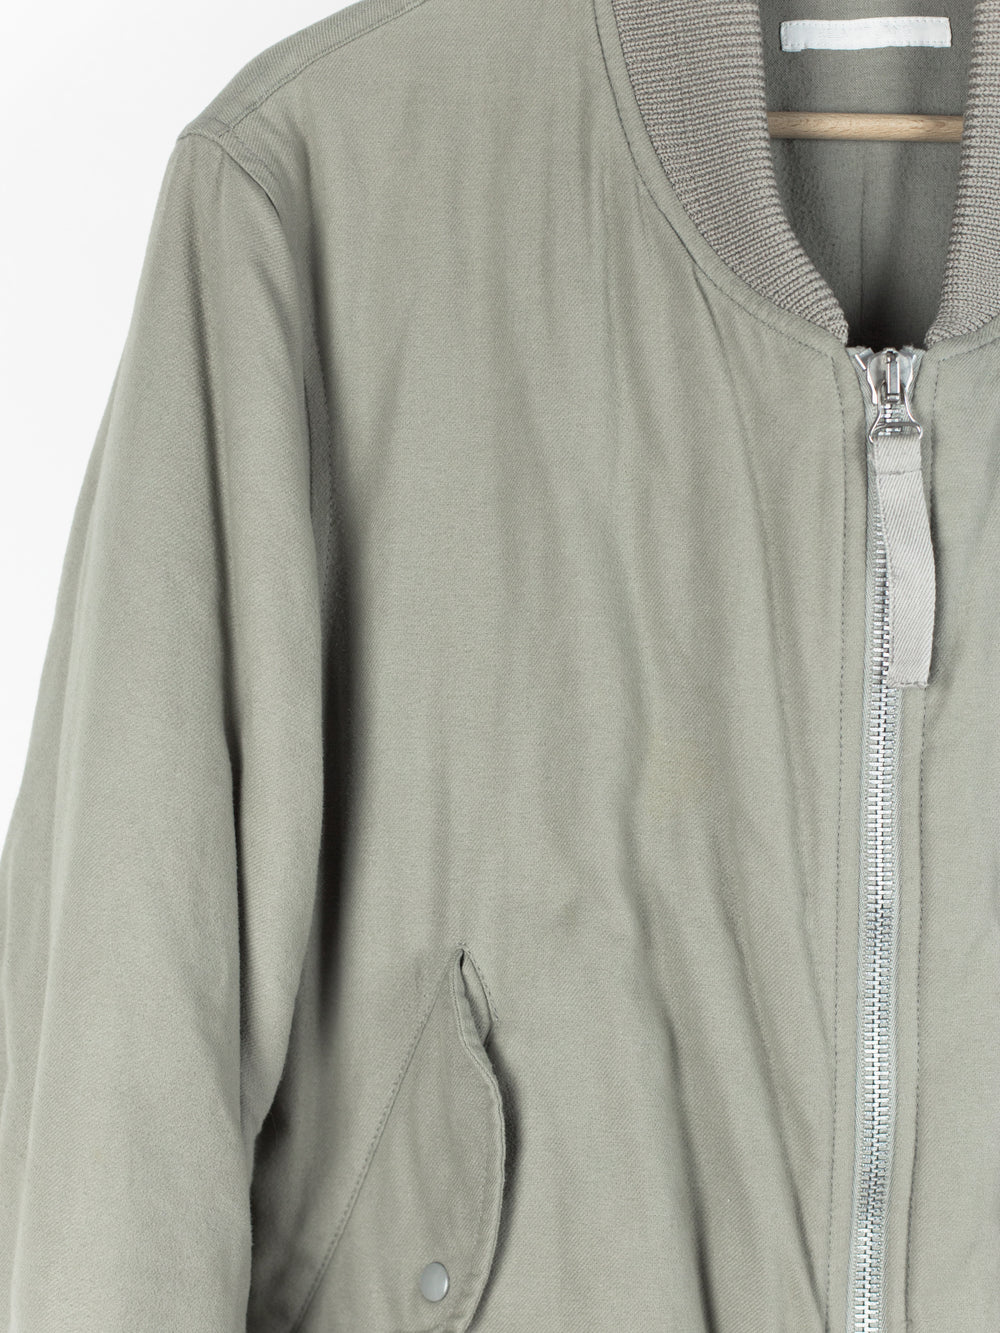 Helmut Lang AW03 Grey Ma-1 Bomber